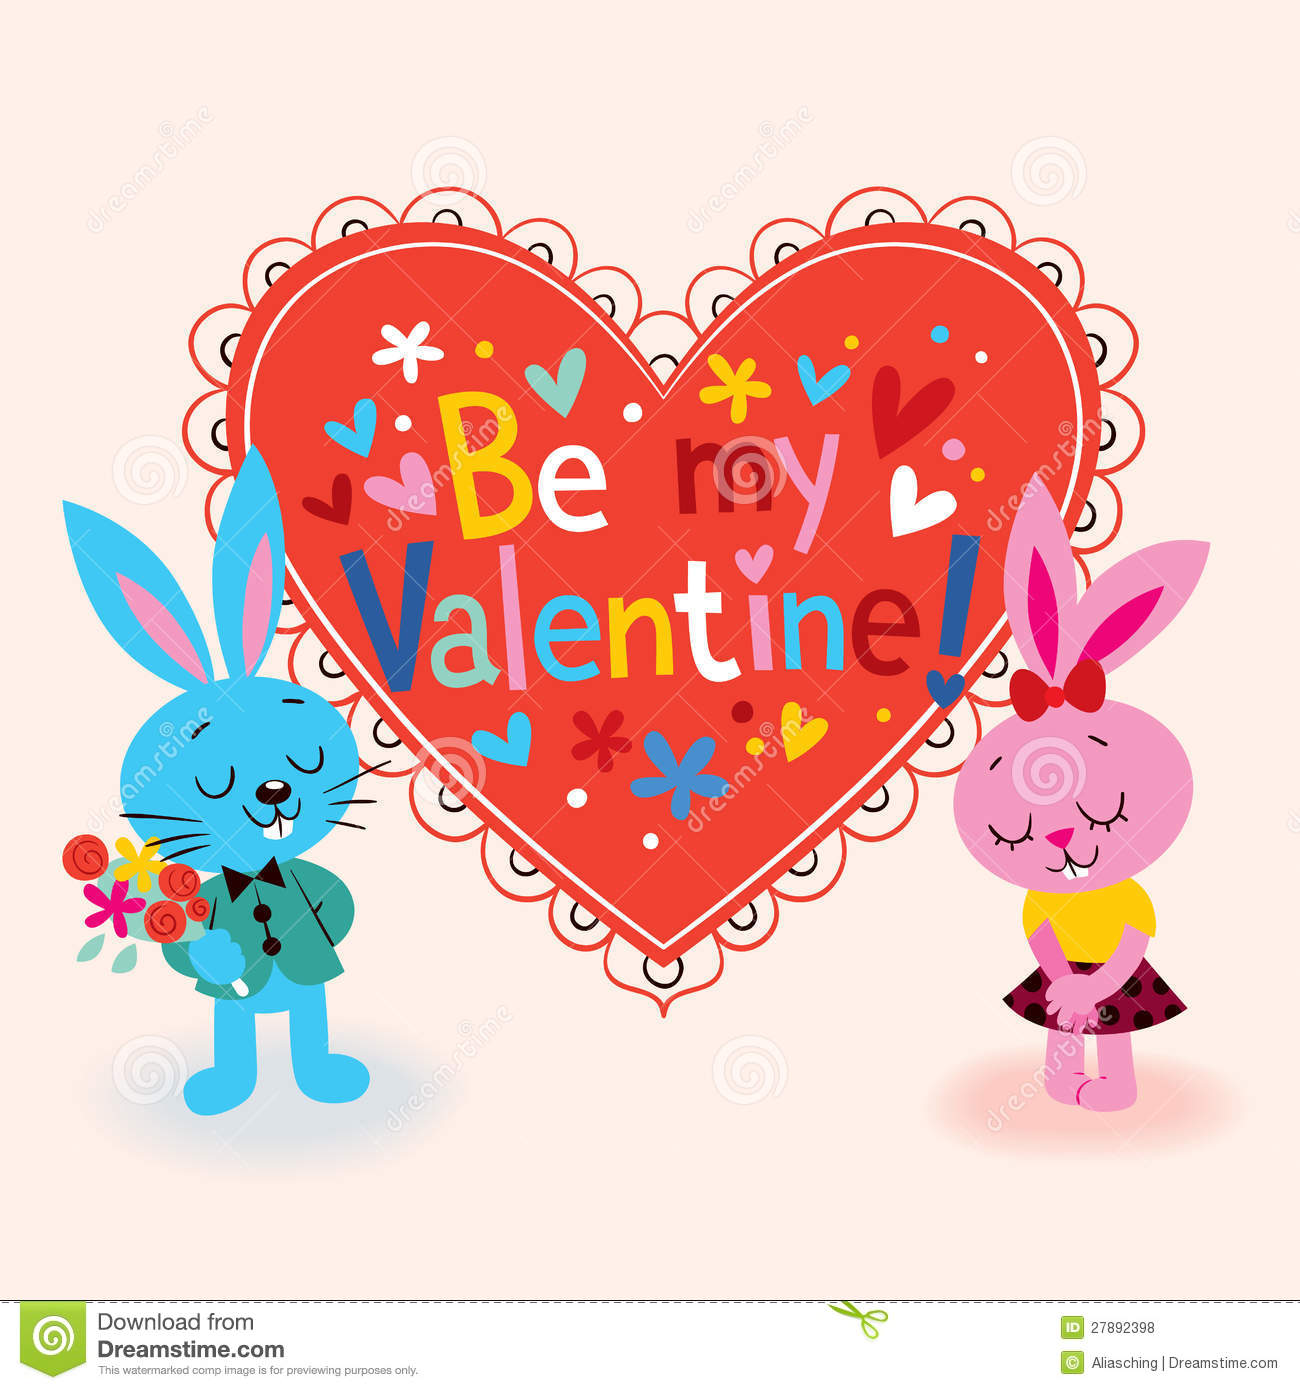 Valentine Card Royalty Free Stock Photos Image